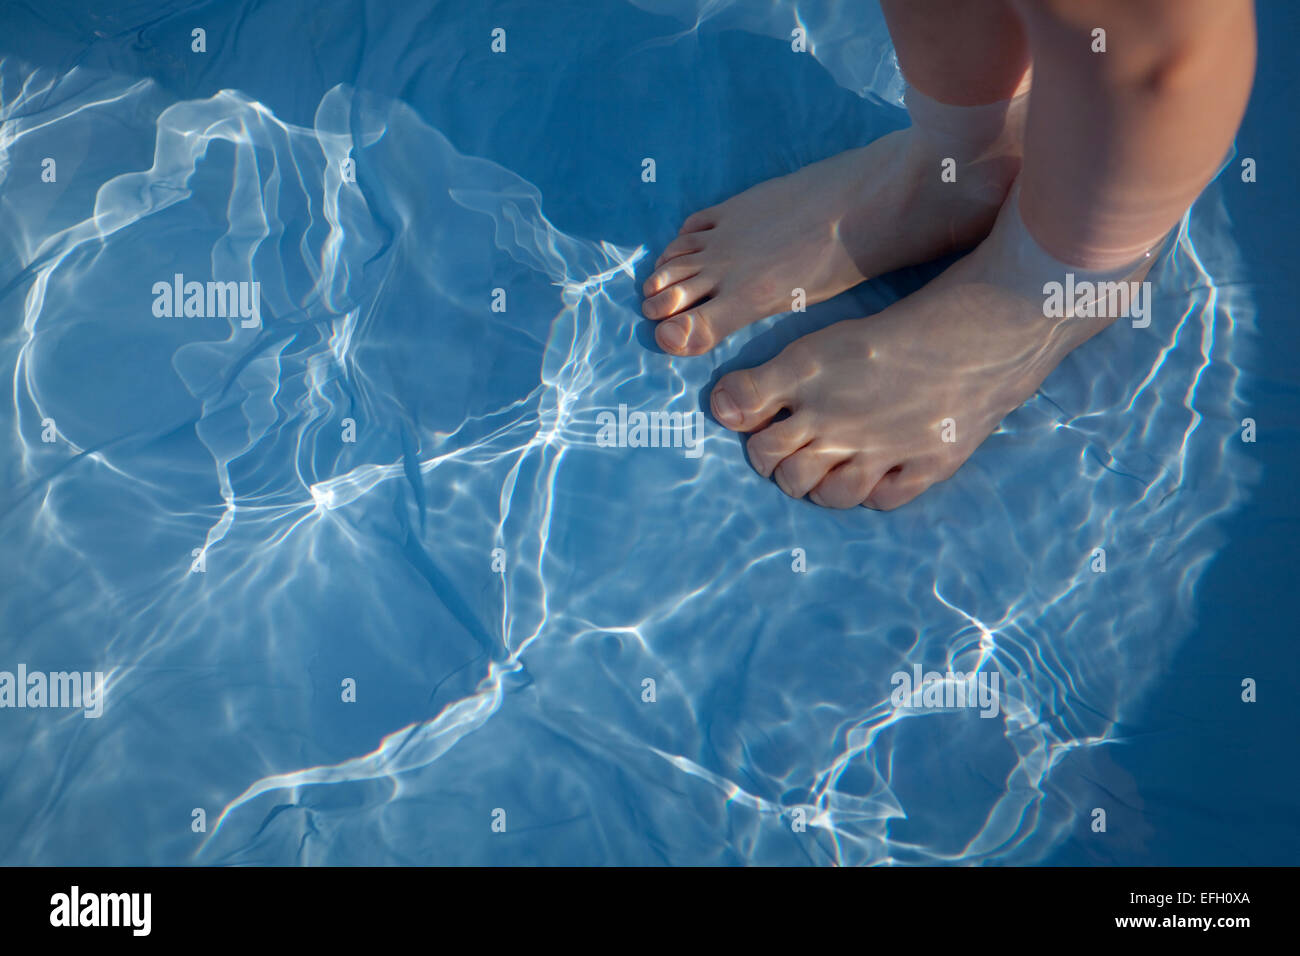 Child's feet distorted under the clear blue water of a paddling pool. - Stock Image